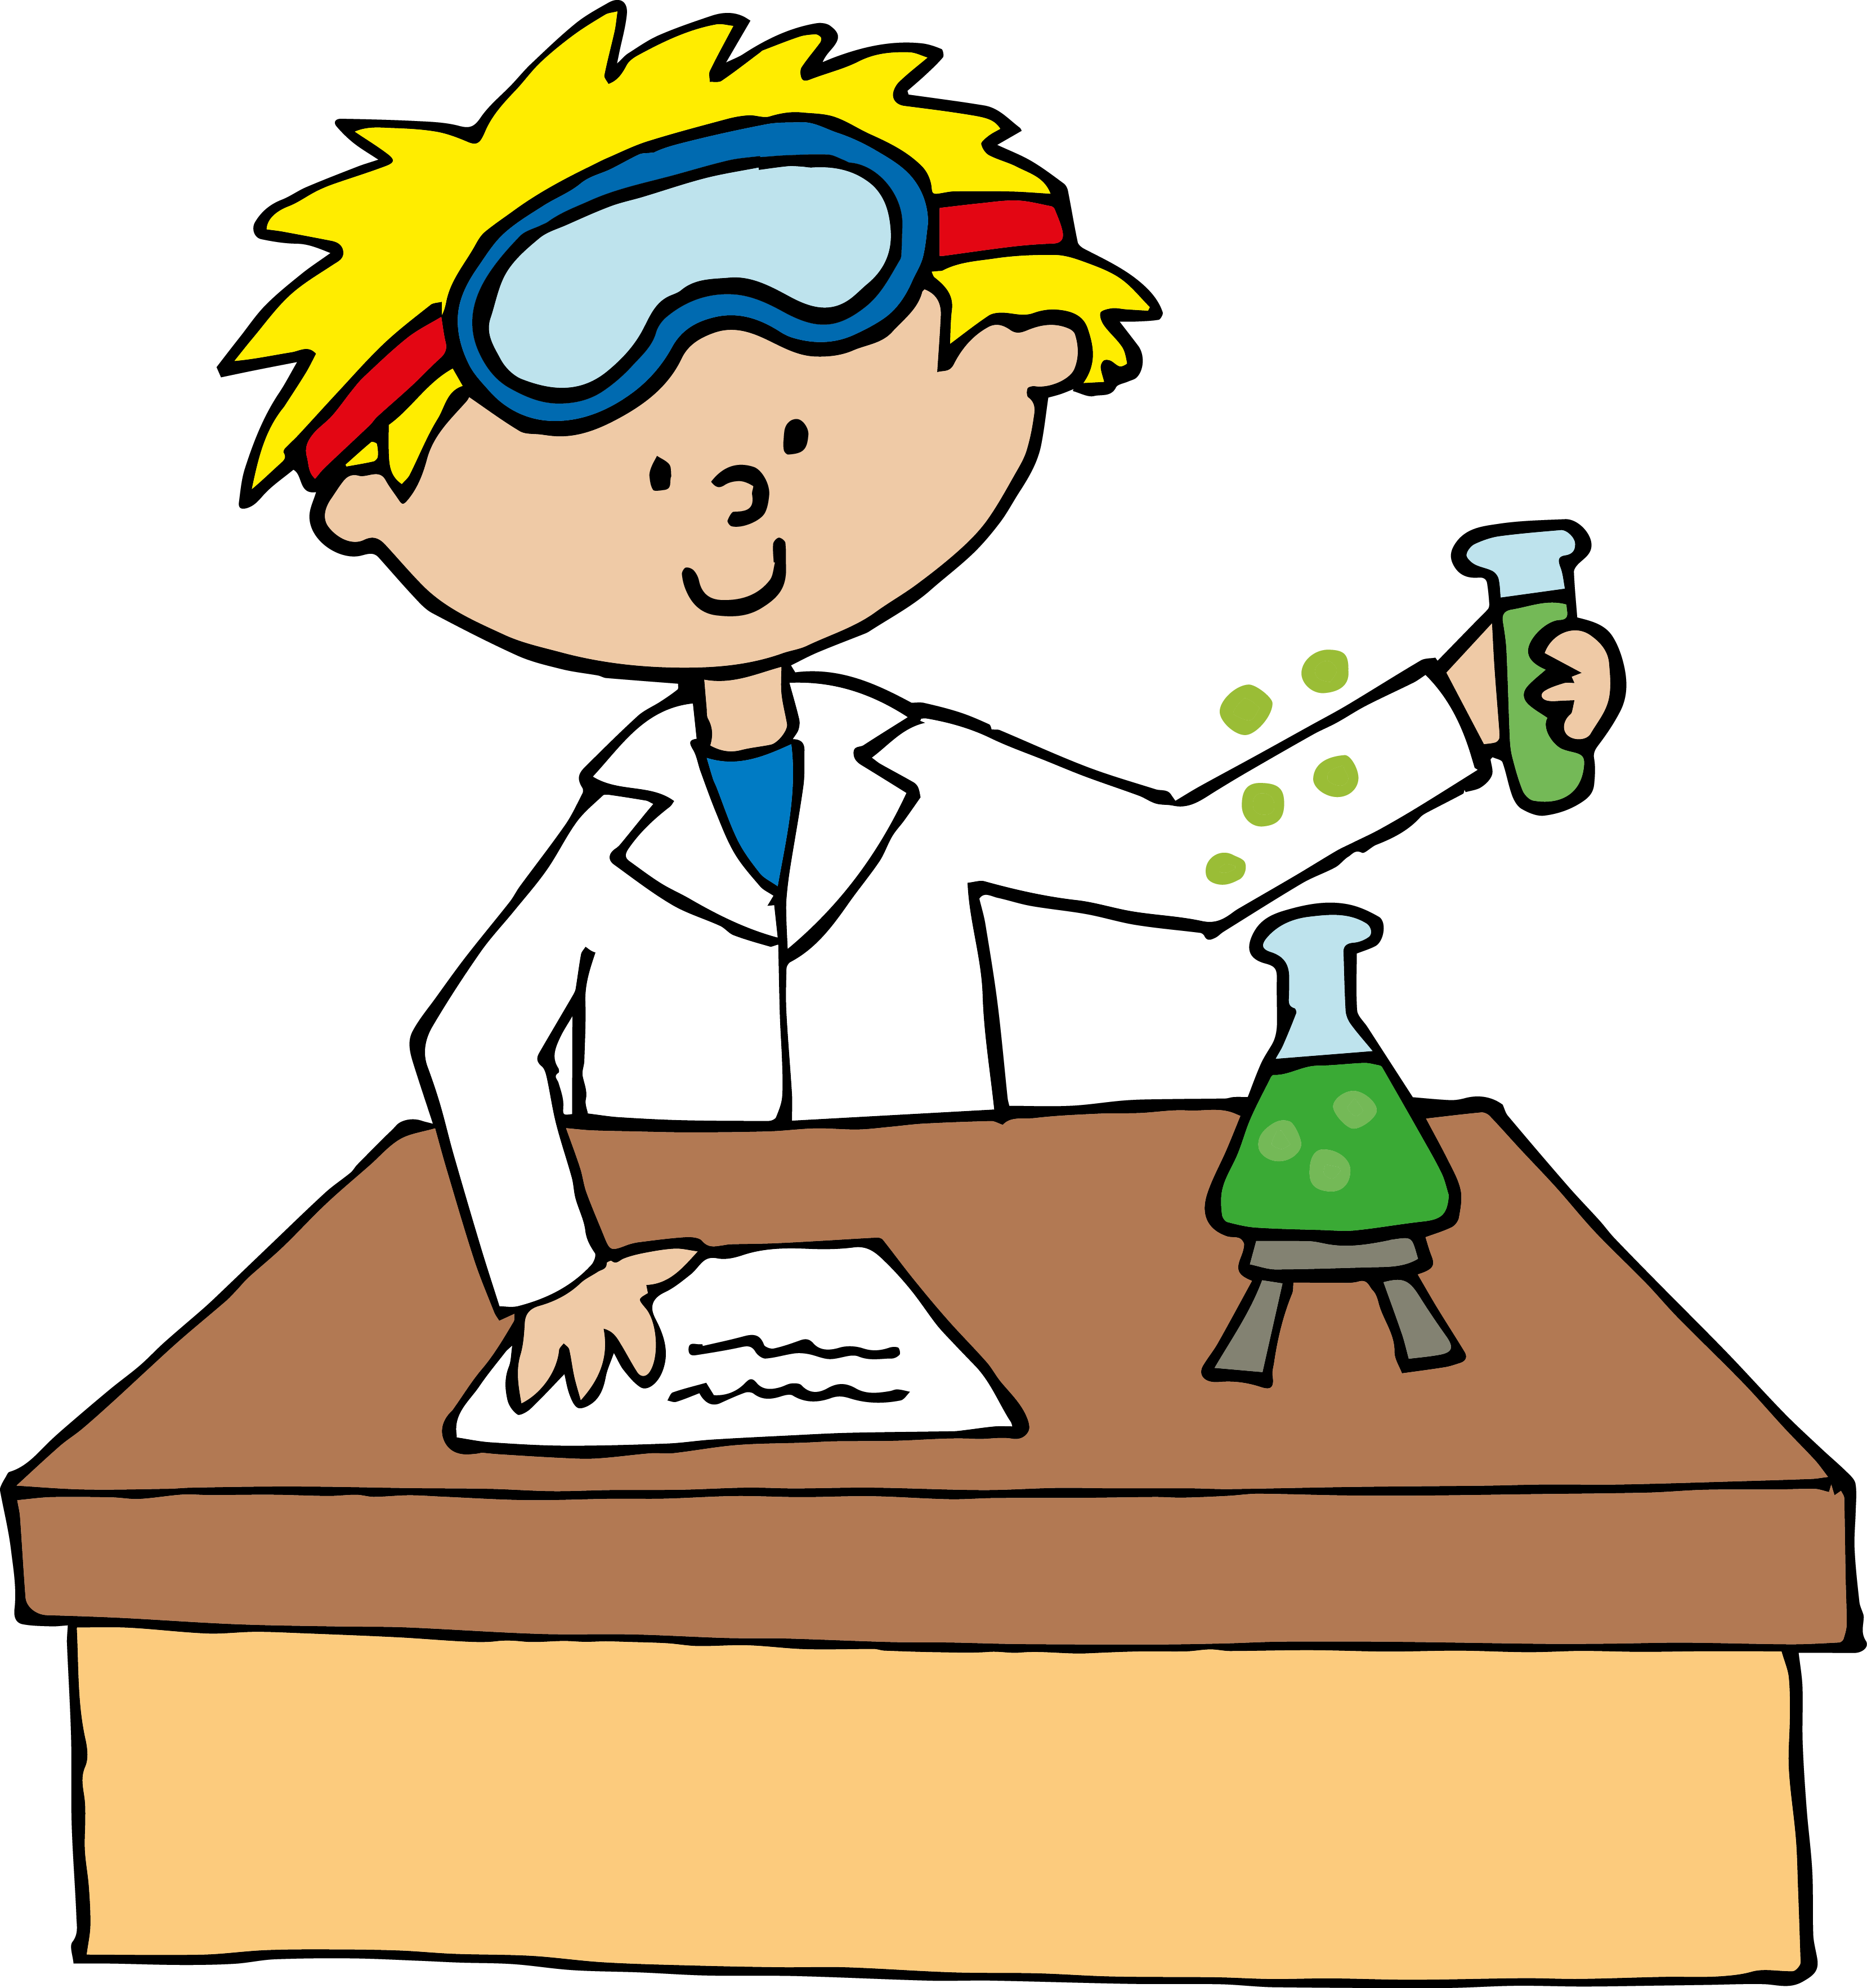 Science Related Clip Arts Free Cliparts -Science Related Clip Arts Free Cliparts That You Can Download To You-16